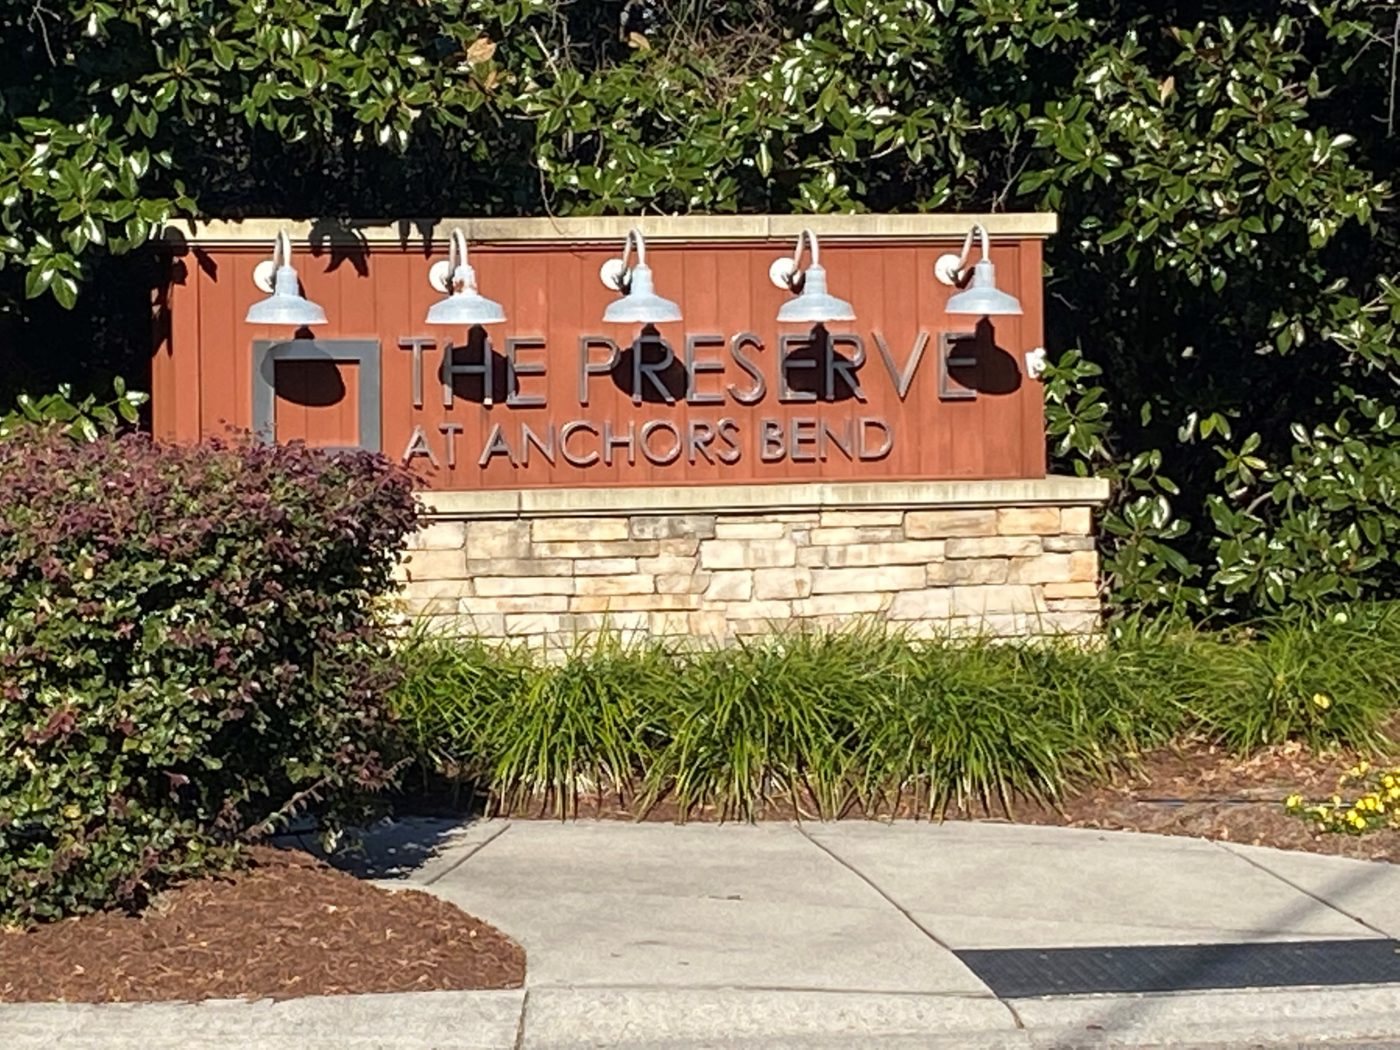 Anchors Bend - Entrance Sign